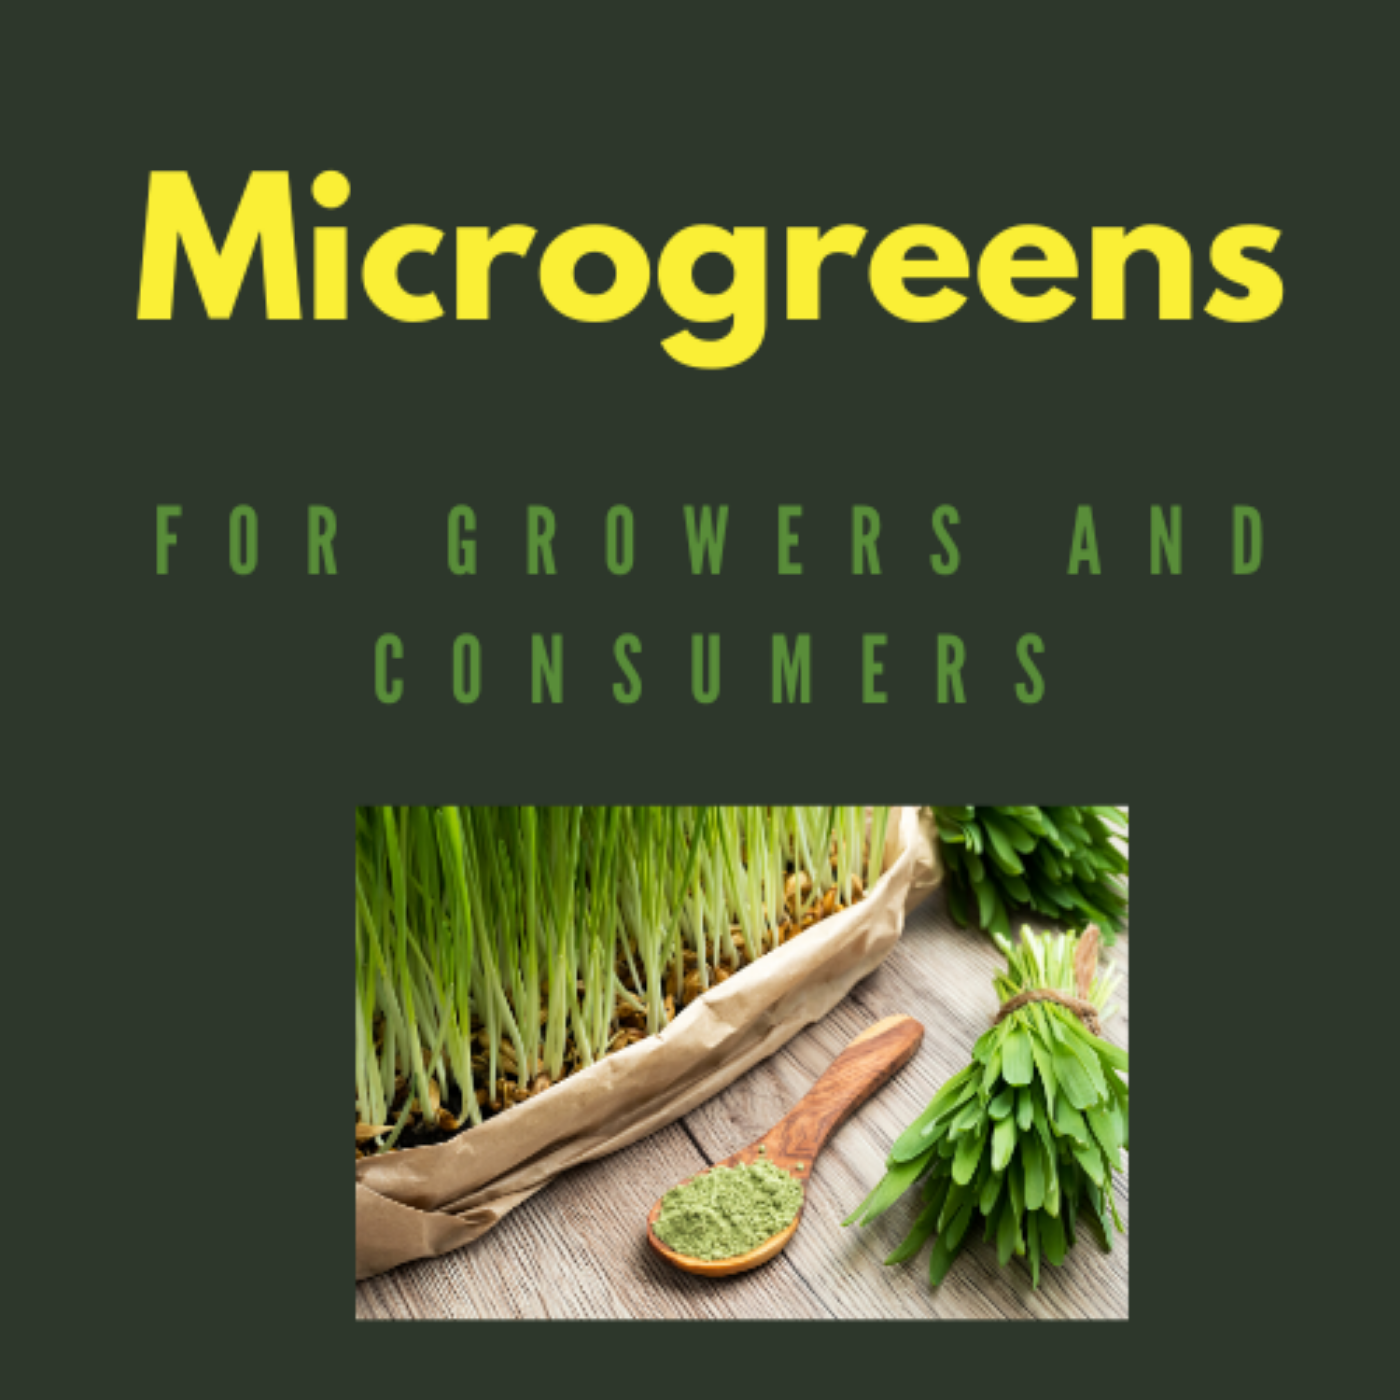 Microgreens: For Growers and Consumers